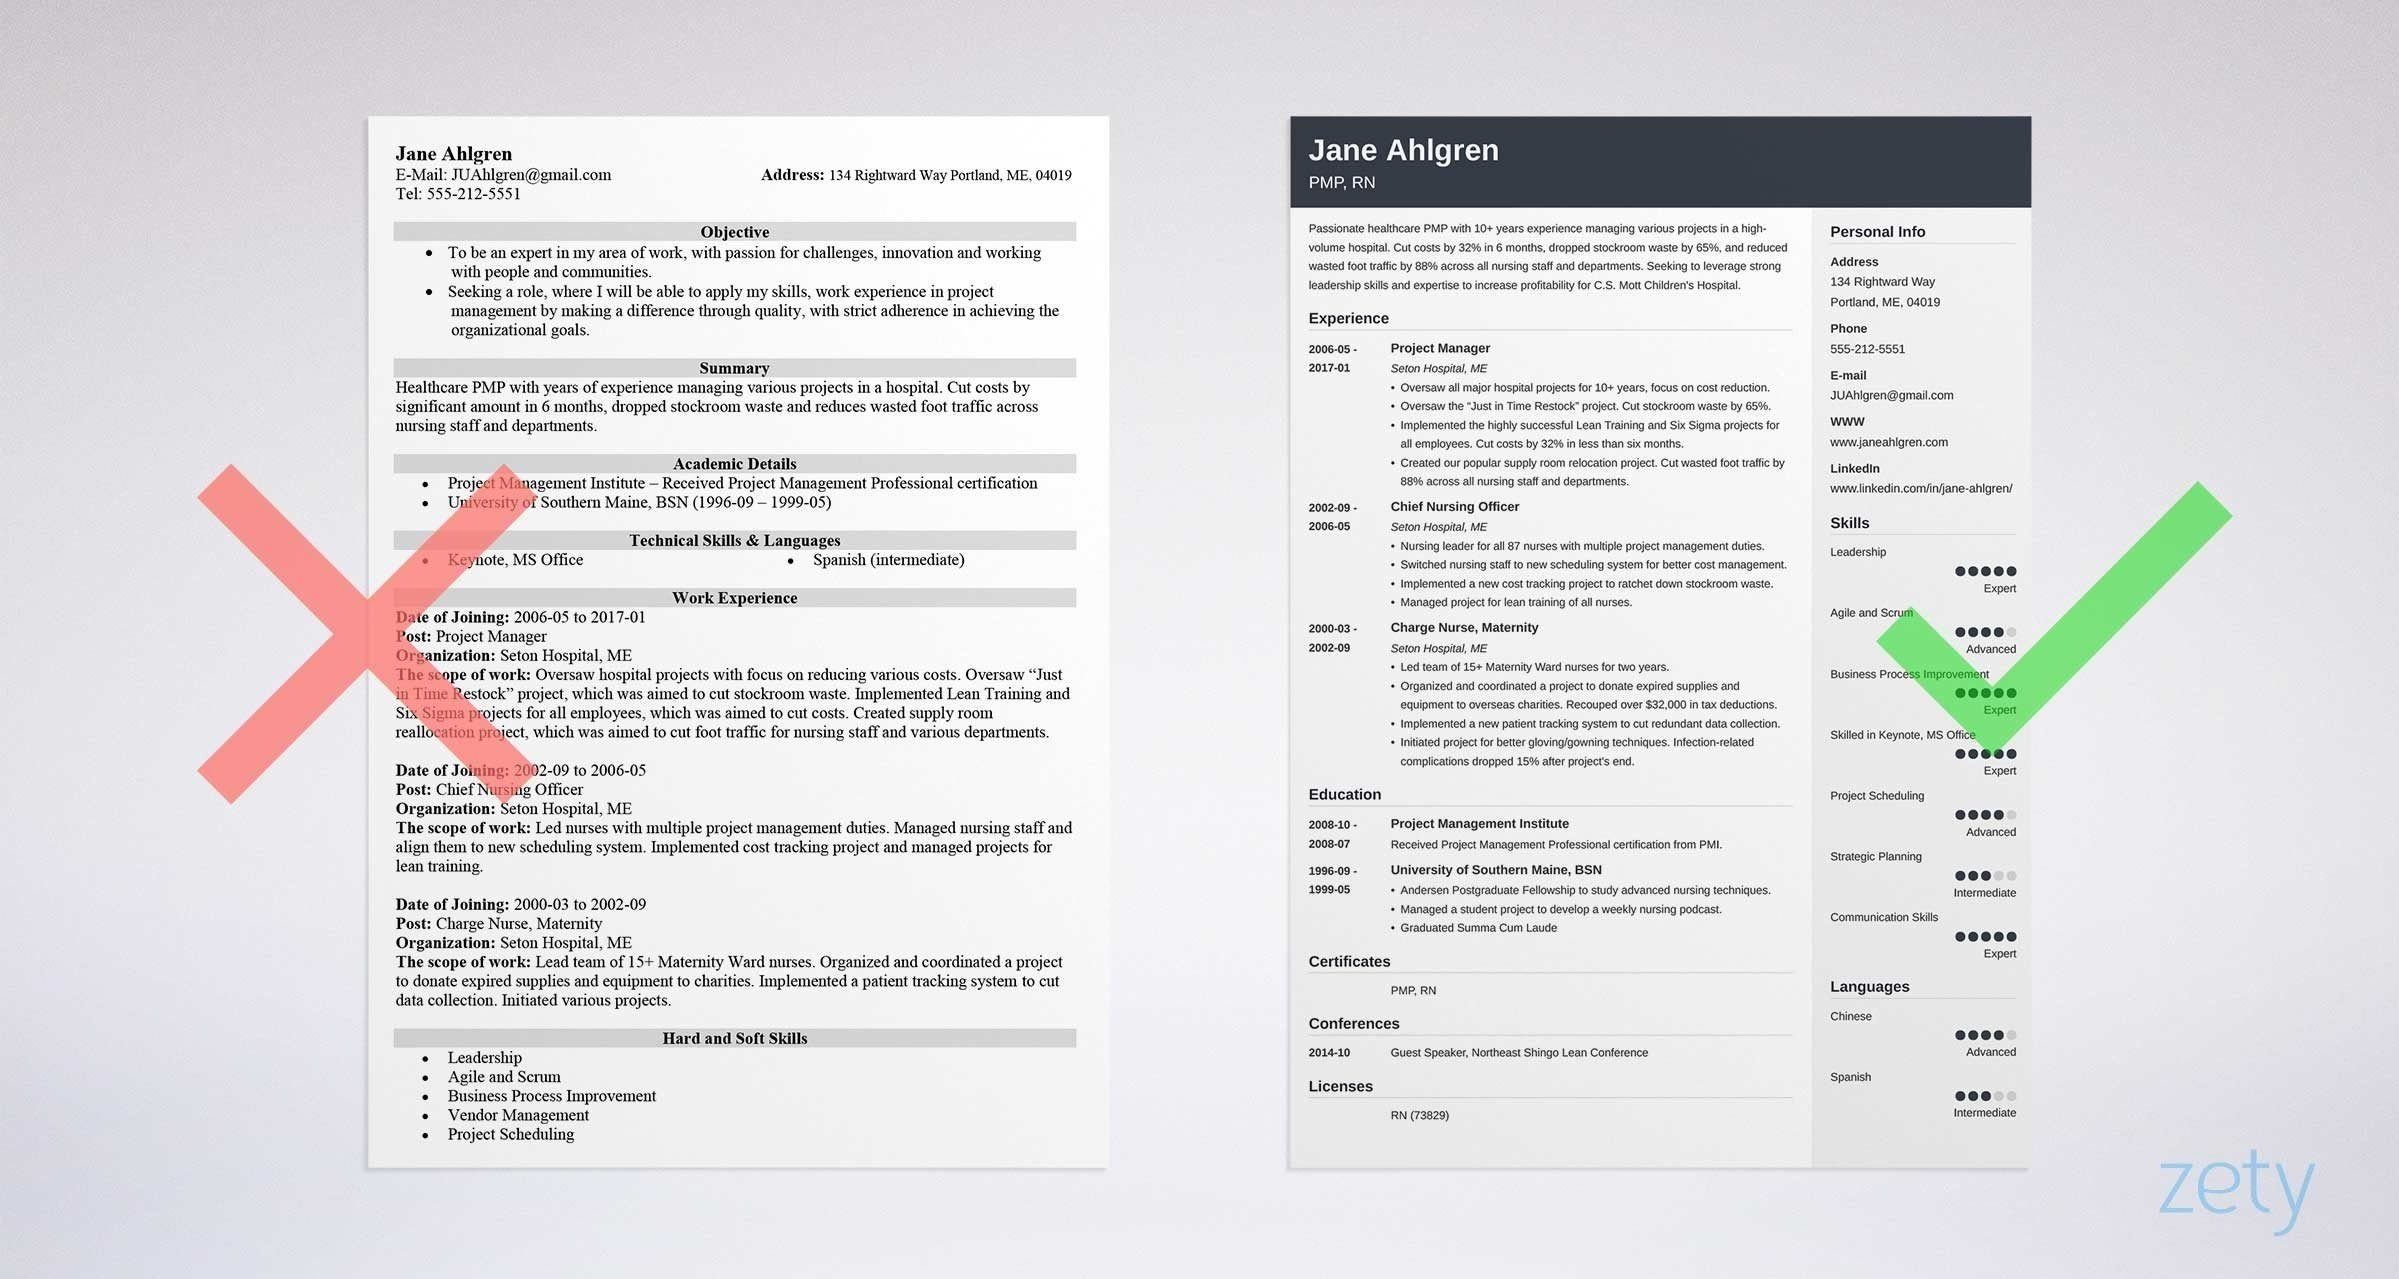 https://cdn-images.zety.com/pages/project_manager_resume_samples.jpg